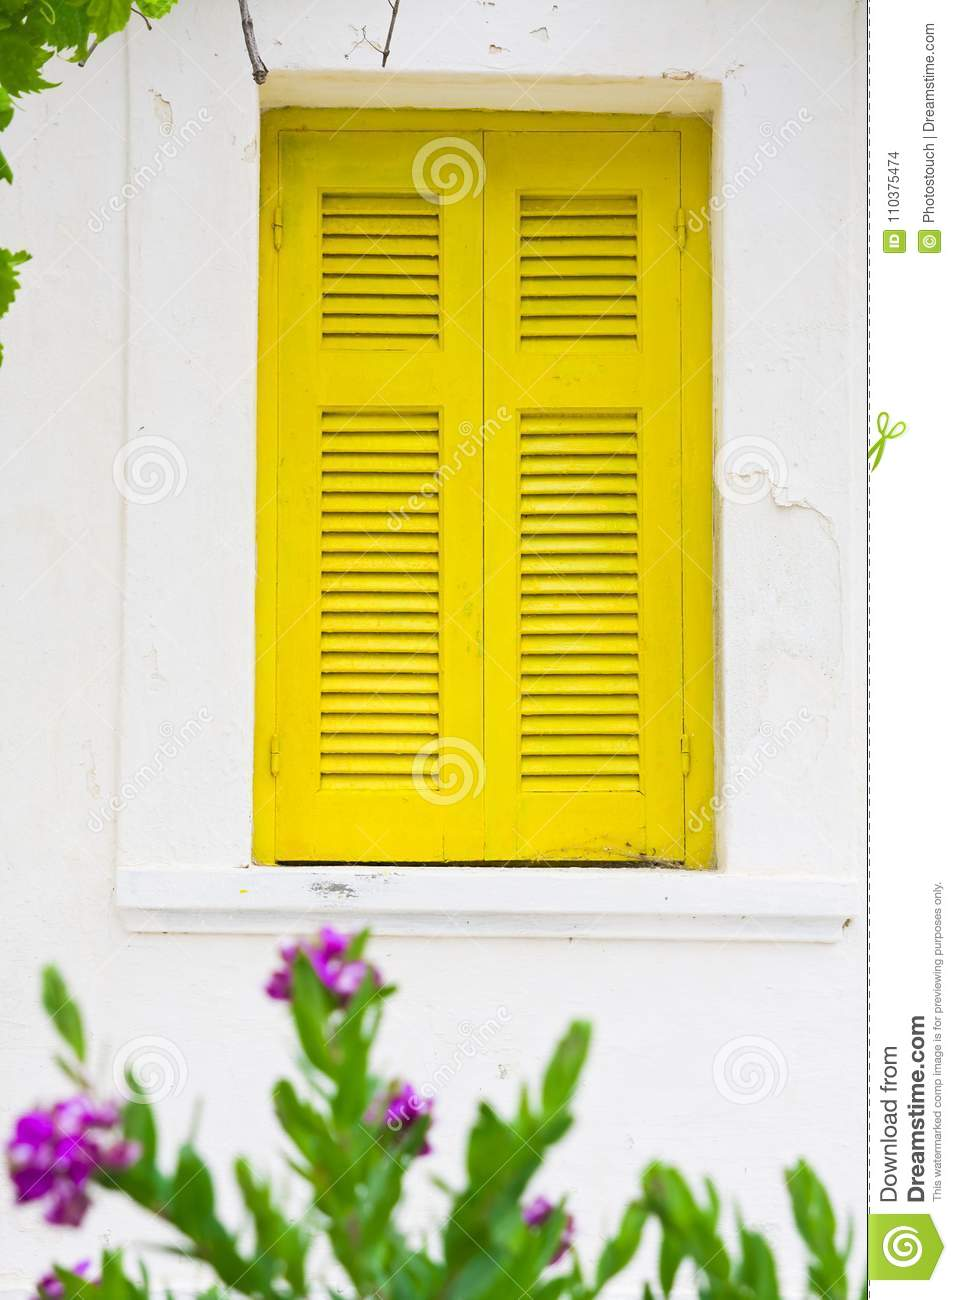 Old Yellow Painted Wooden Window Shutter Stock Photo - Image of ...